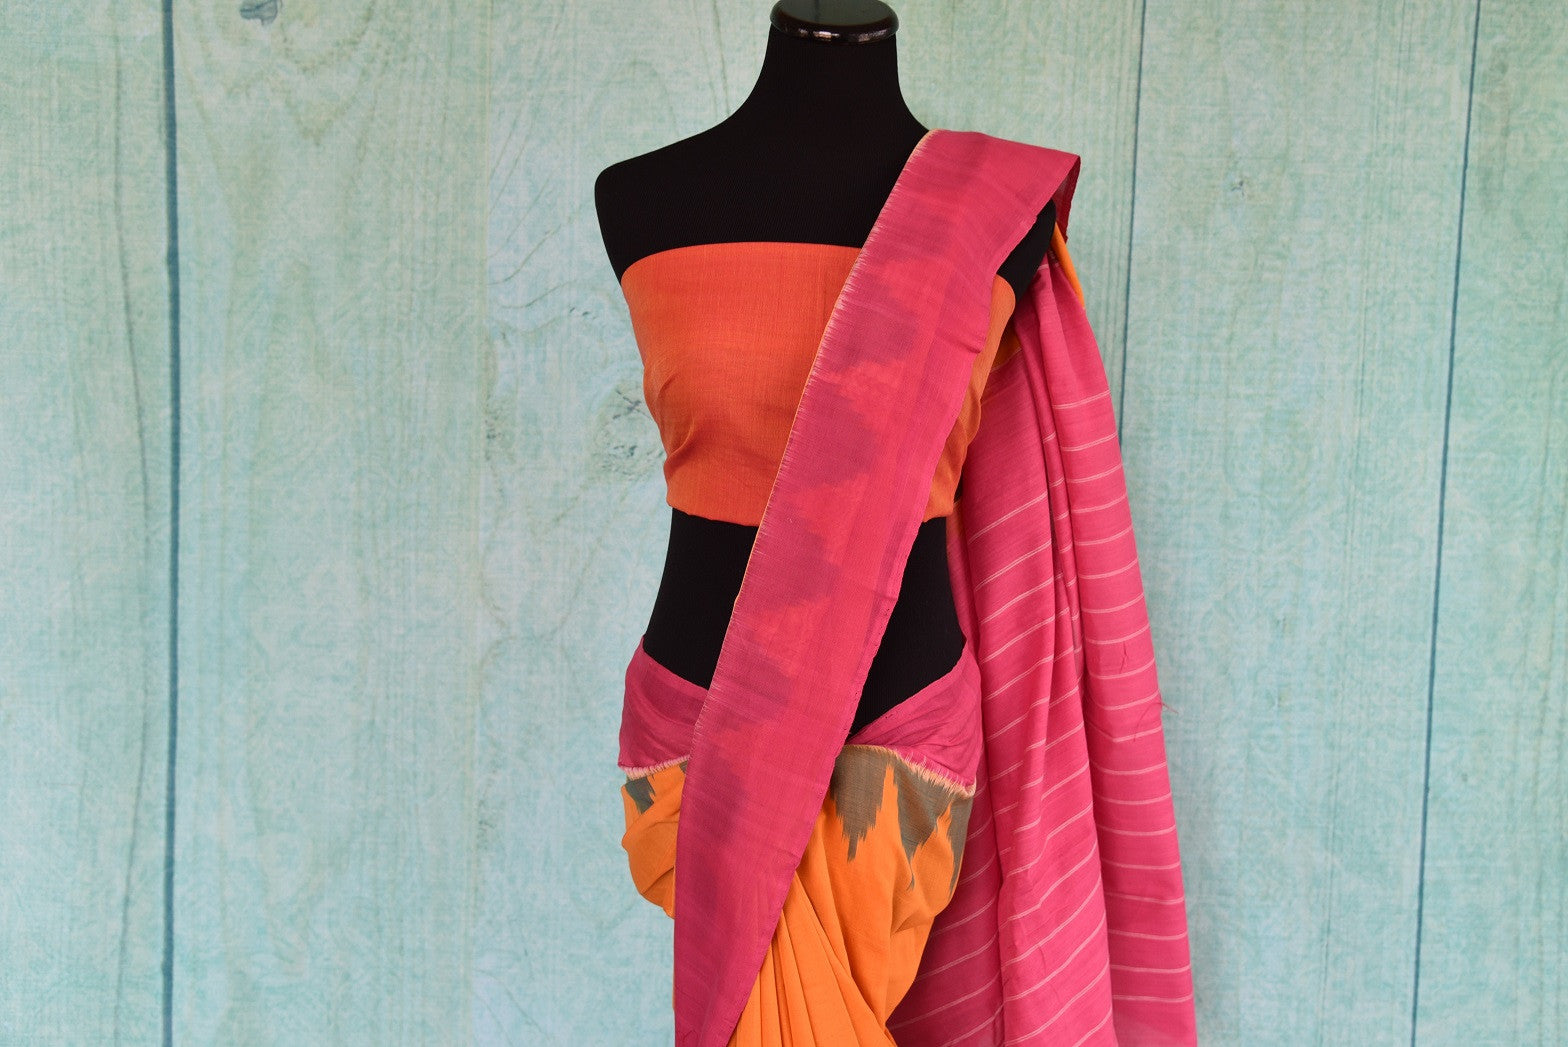 90D340 Traditional cotton ikkat saree that works well for pujas and festivals. The pink and yellow sari can be bought at our ethnic Indian wear store online - Pure Elegance.